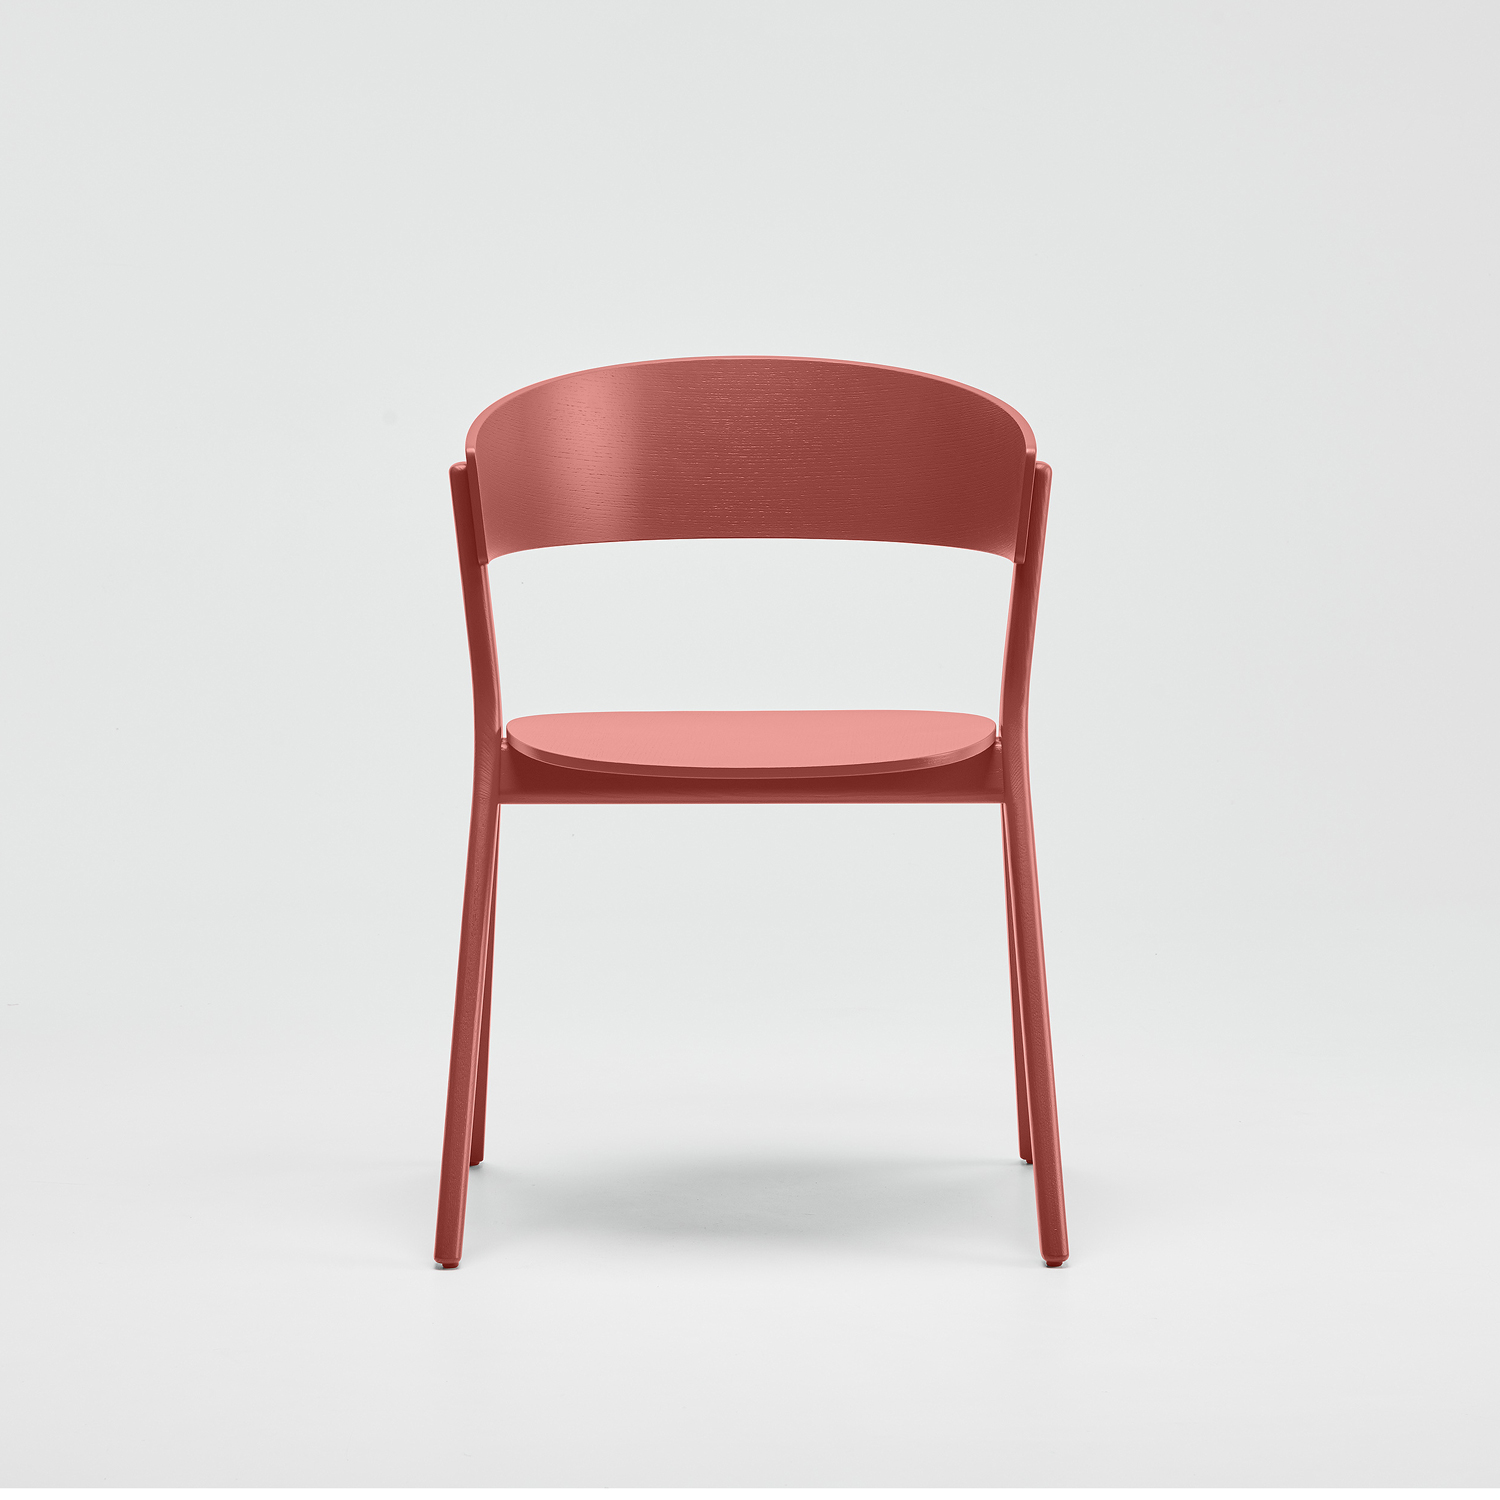 EDITS Circus wood chair in Japan Red lacquer